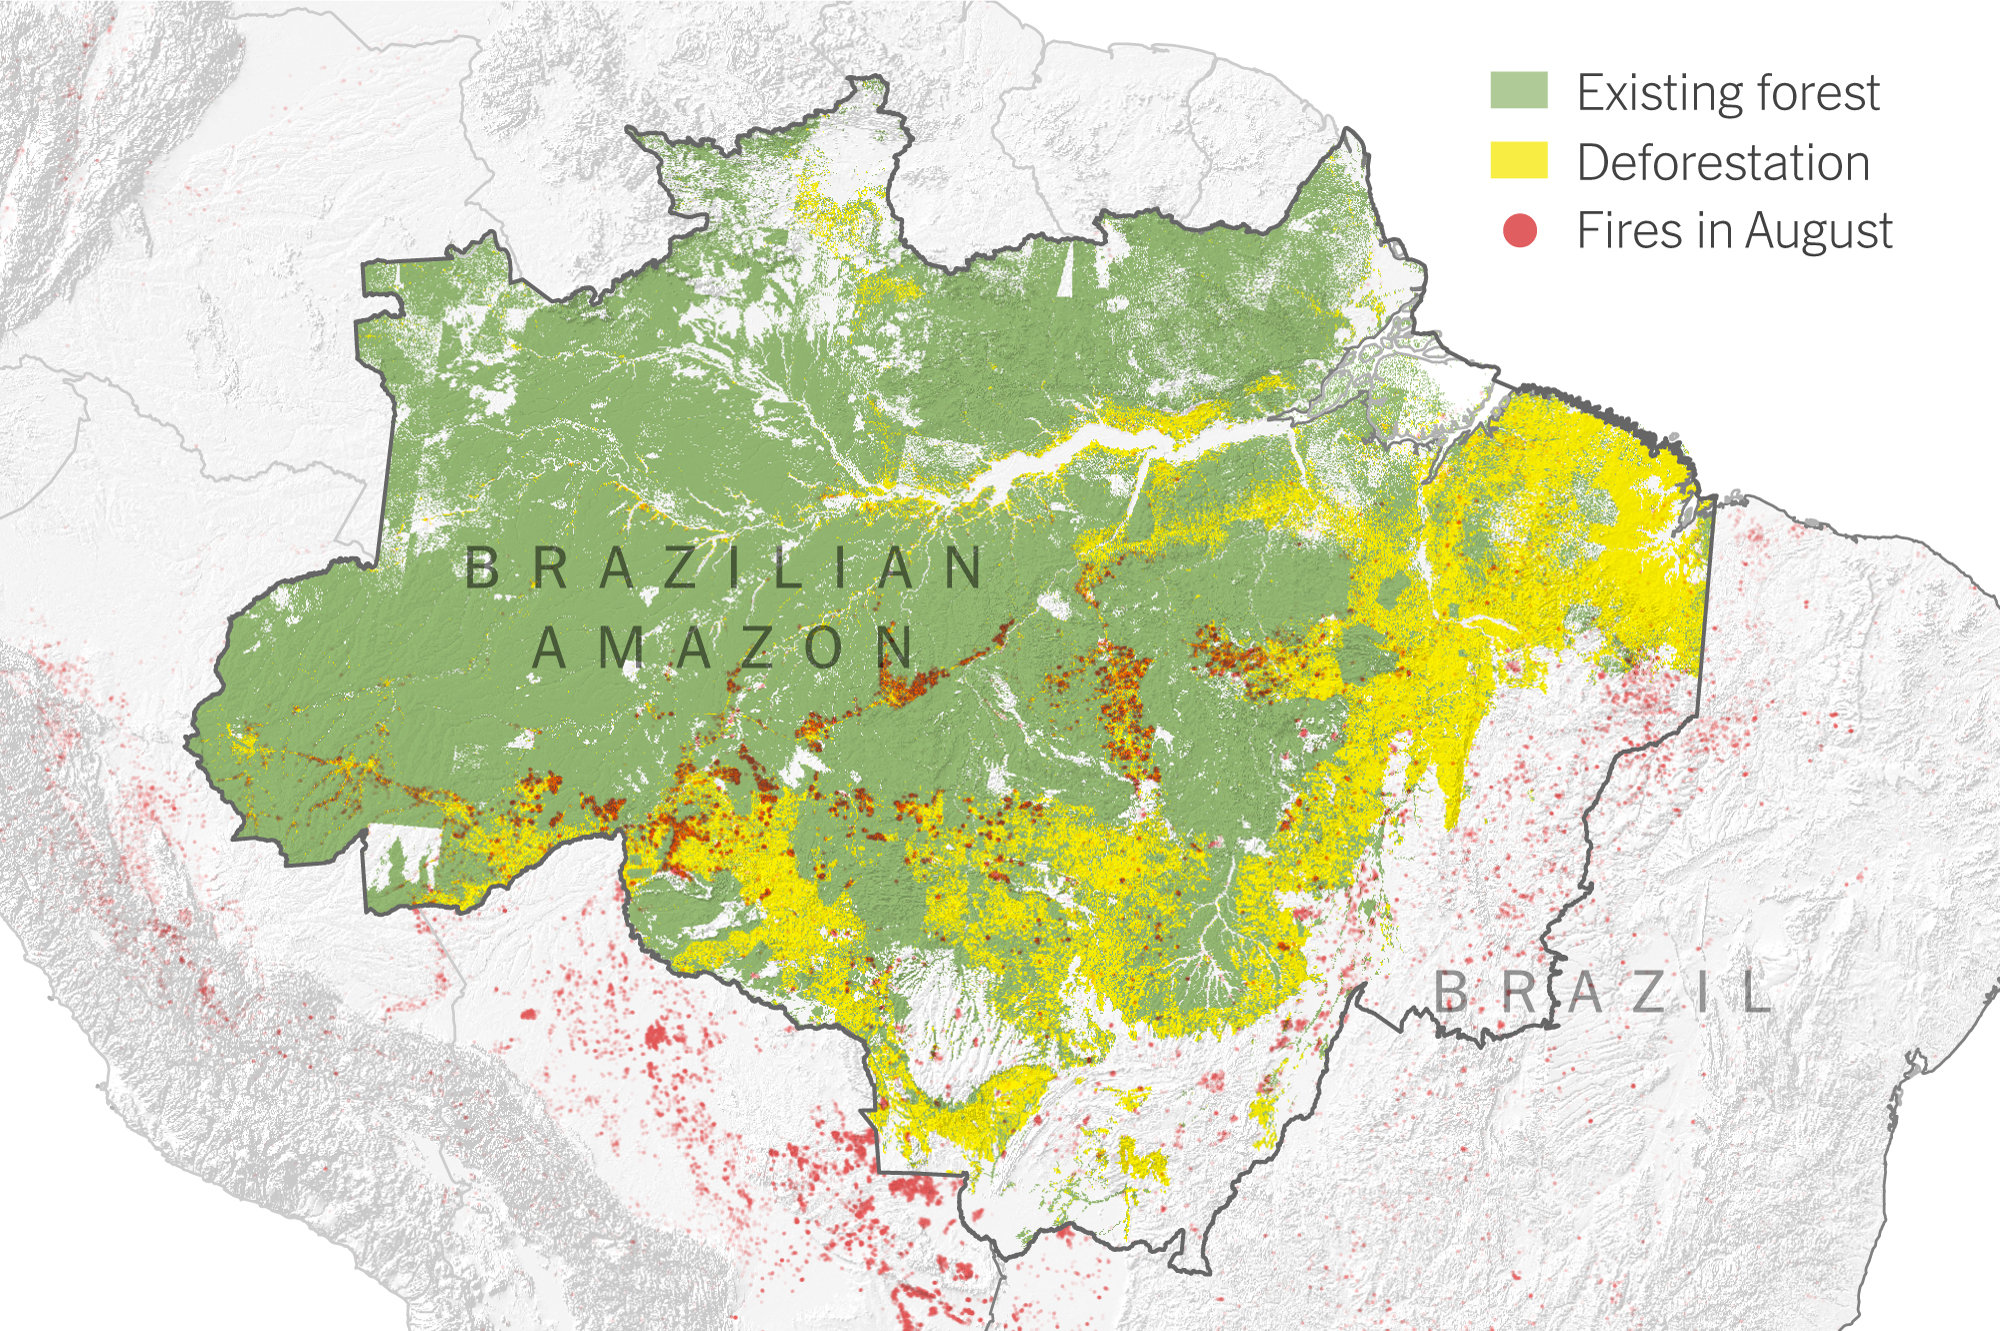 Images of the wildfire that devastated paradise, calif., in 2018 are hard to forget. What Satellite Imagery Tells Us About The Amazon Rain Forest Fires The New York Times